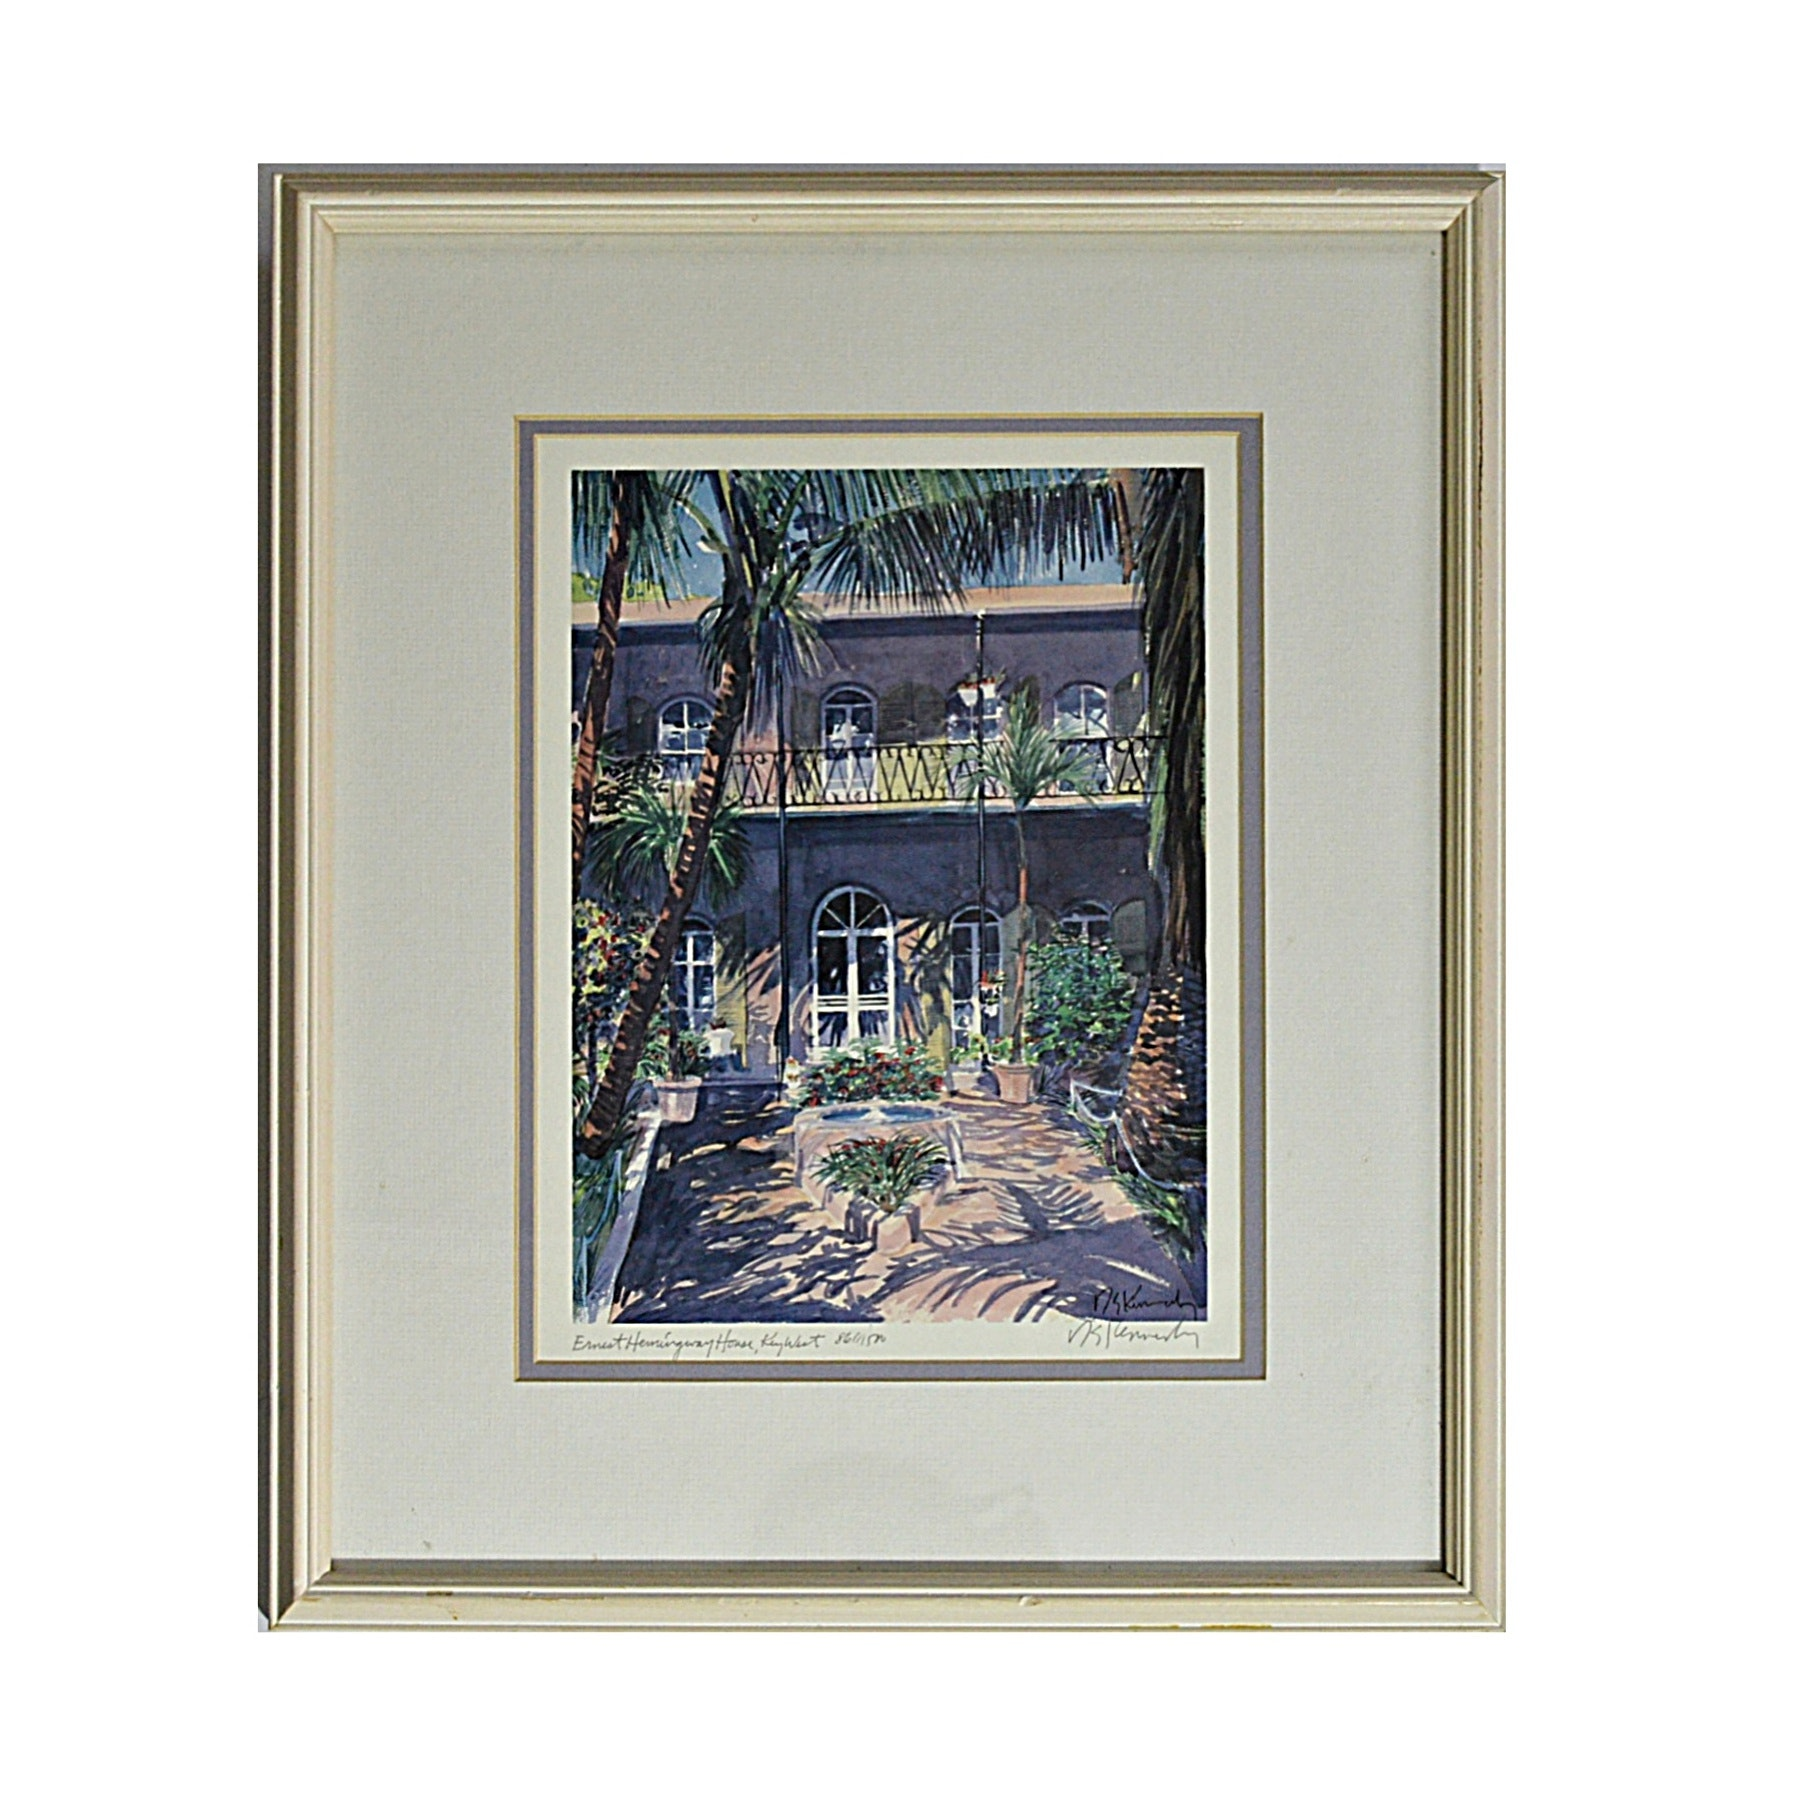 R. E. Kennedy Signed Limited Edition Print after a Watercolor